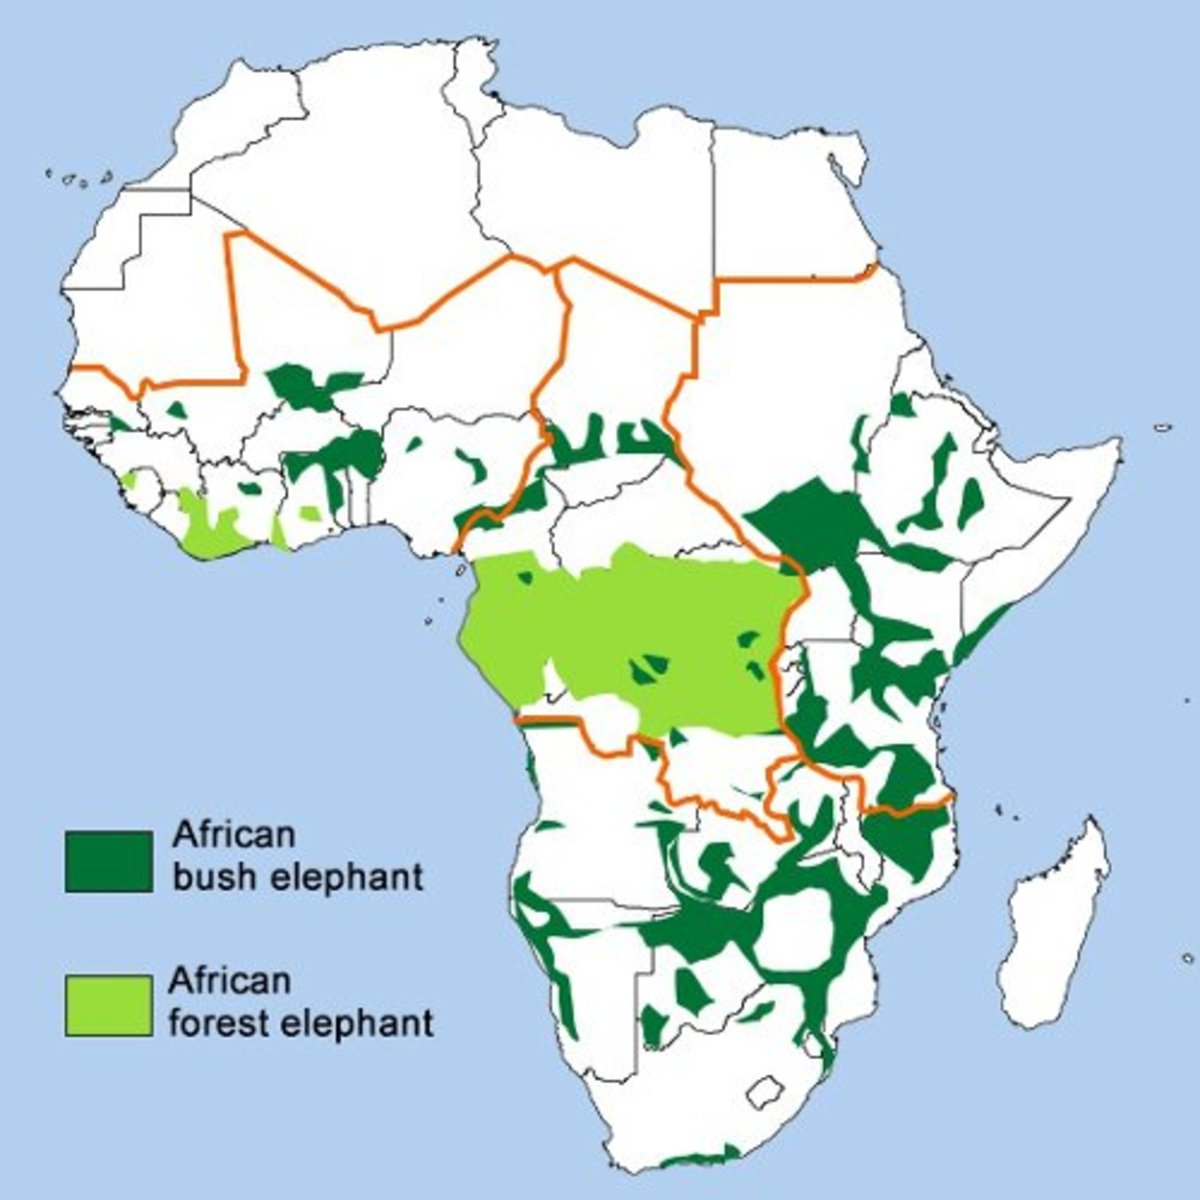 Map of the African forest elephant and African savannah elephants' habitat range.